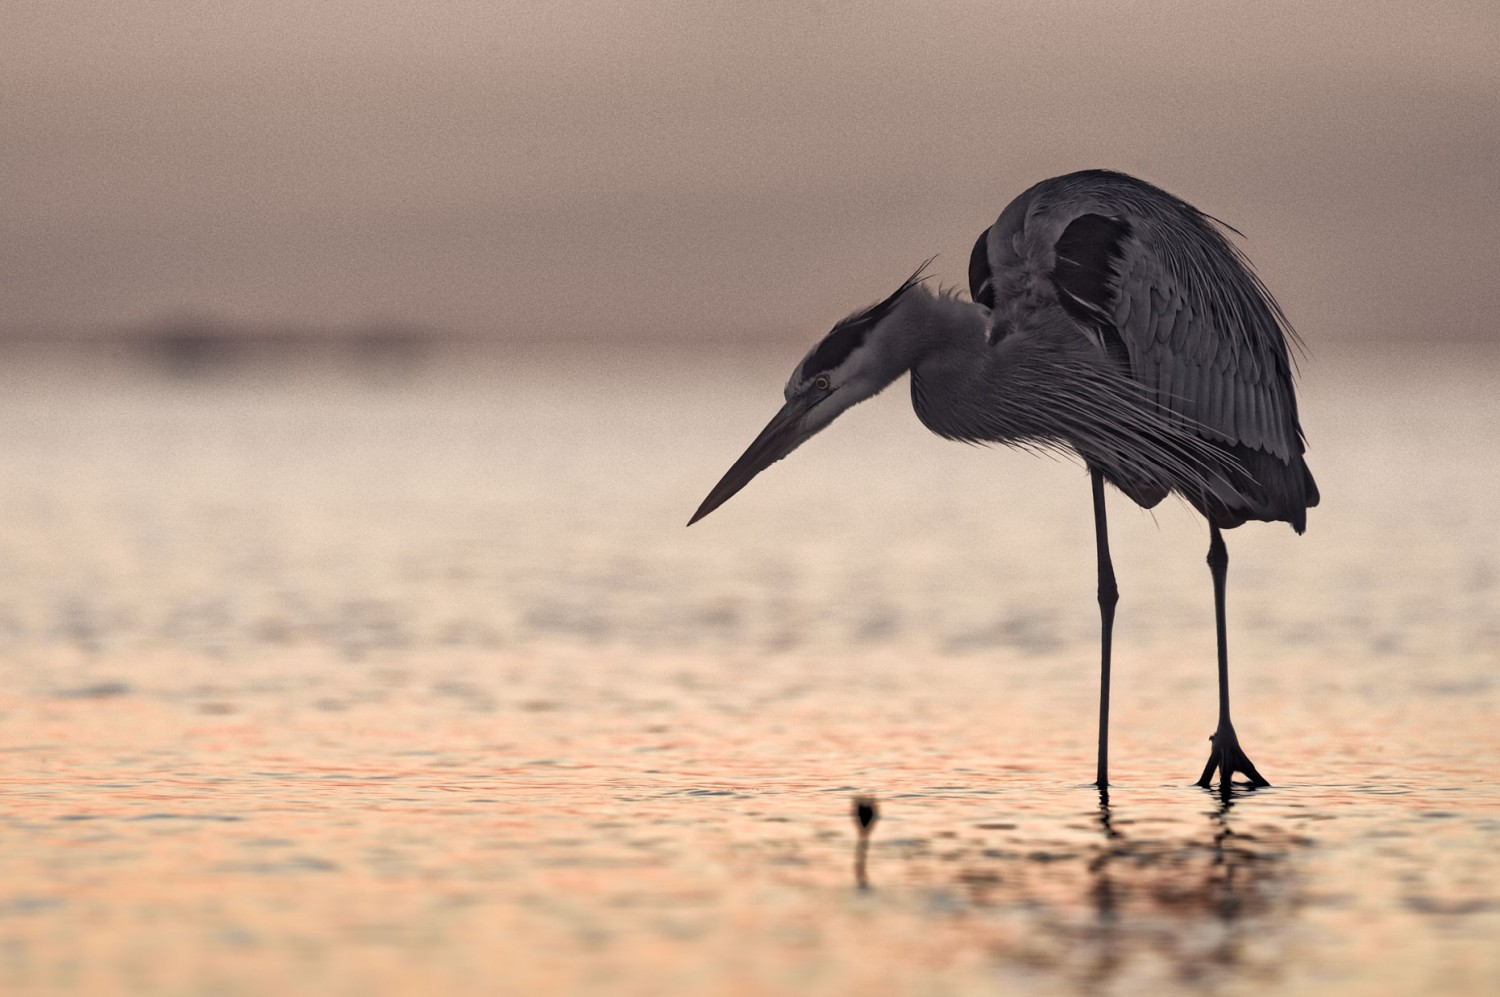 FritzImages   Travel and Outdoor Digital Images   image name = FIF FMA Desoto Grey Heron web1860 iop 1500x997